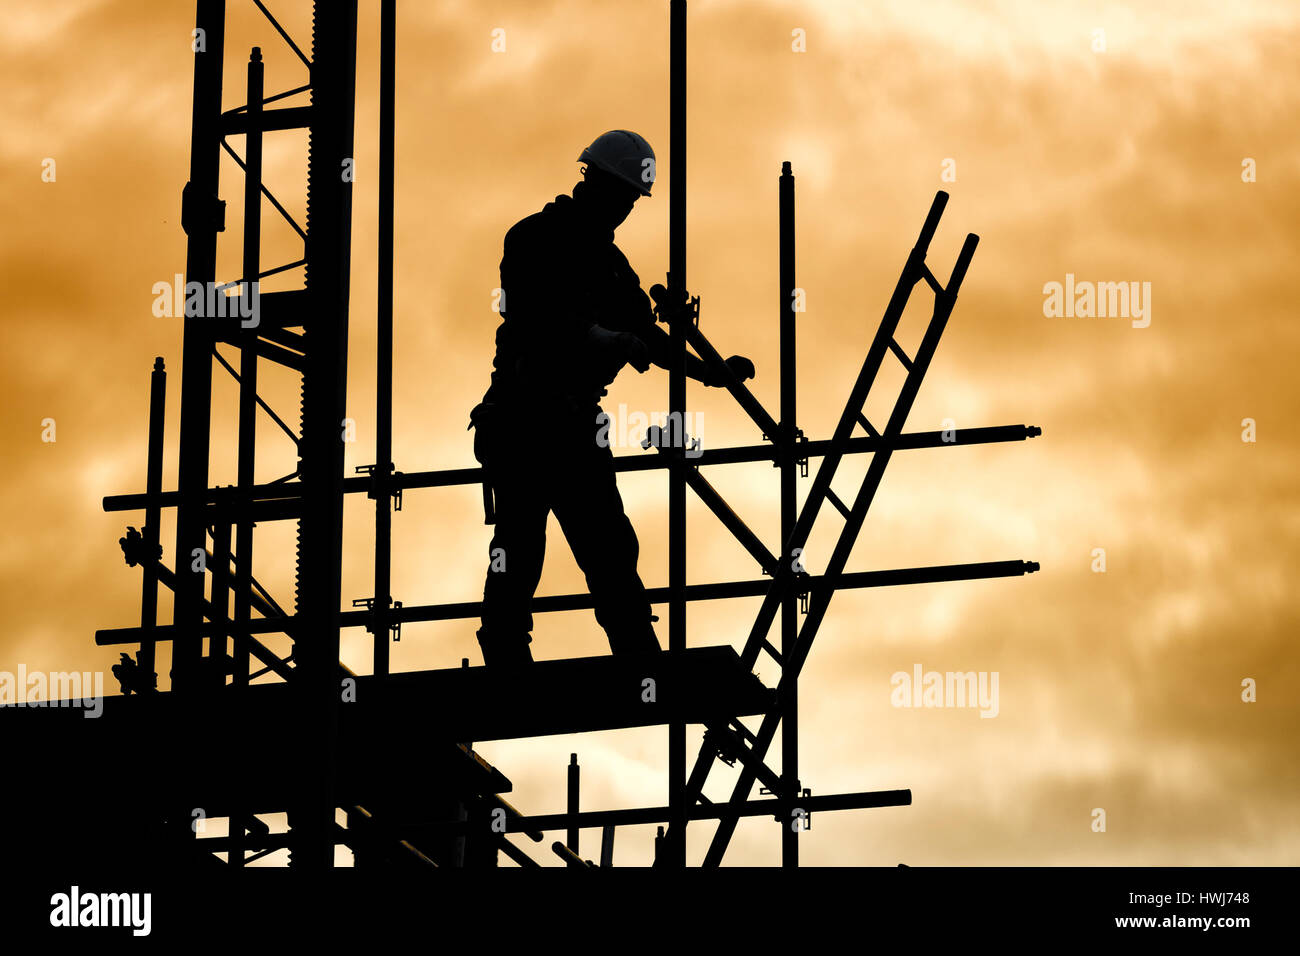 silhouette of construction worker against sky on scaffolding with ladder on building site at sunset - Stock Image